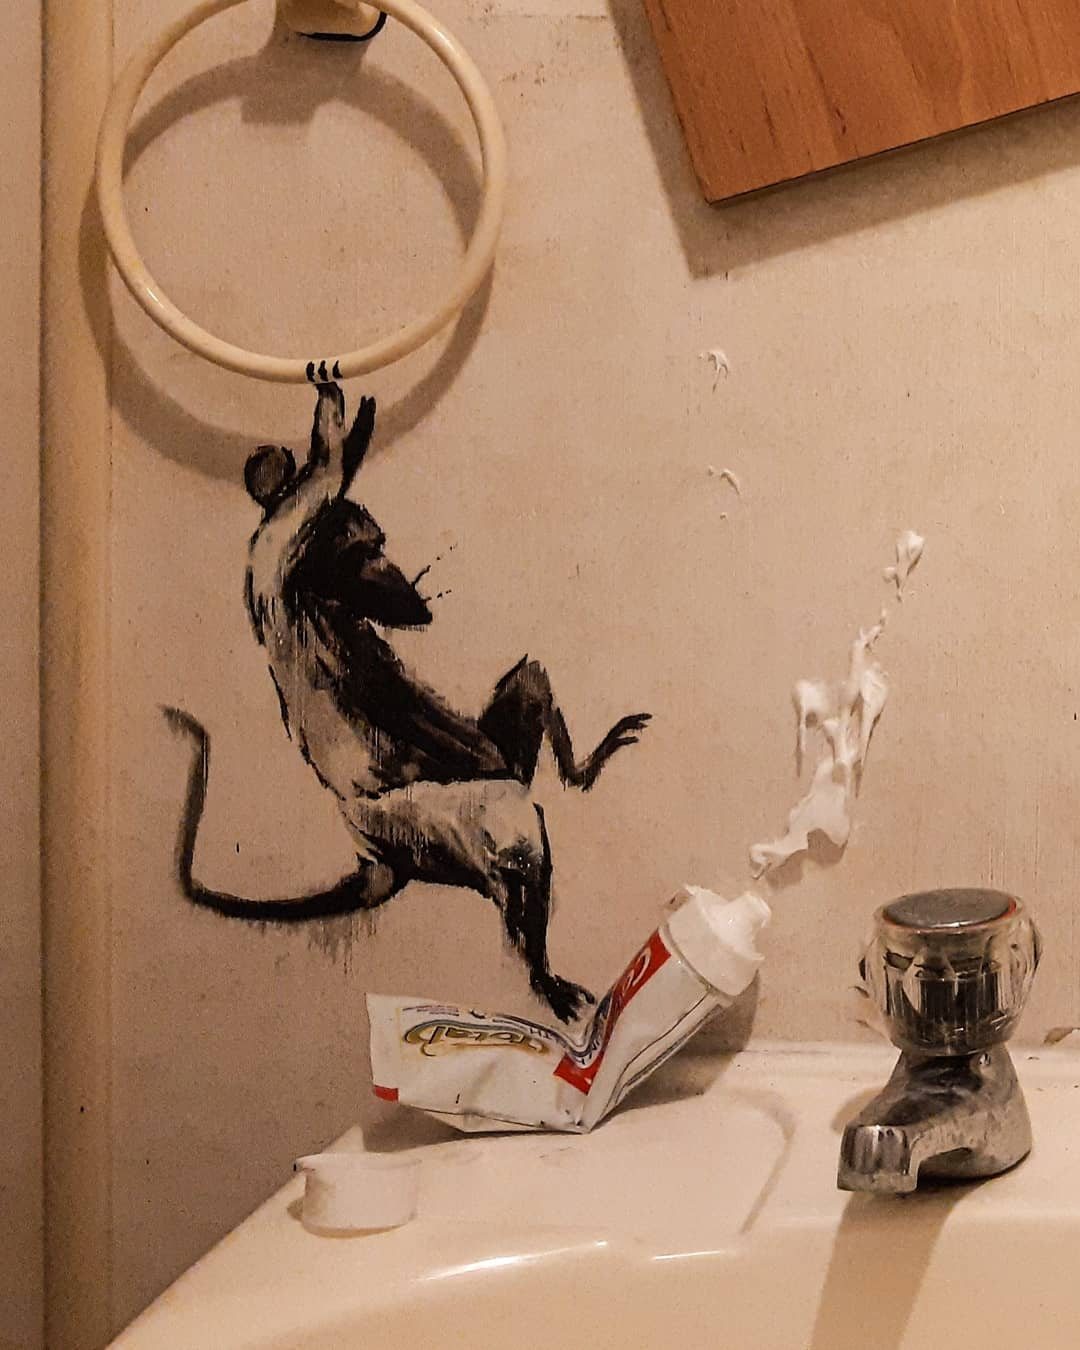 Banksy - My wife hates it when I work from home